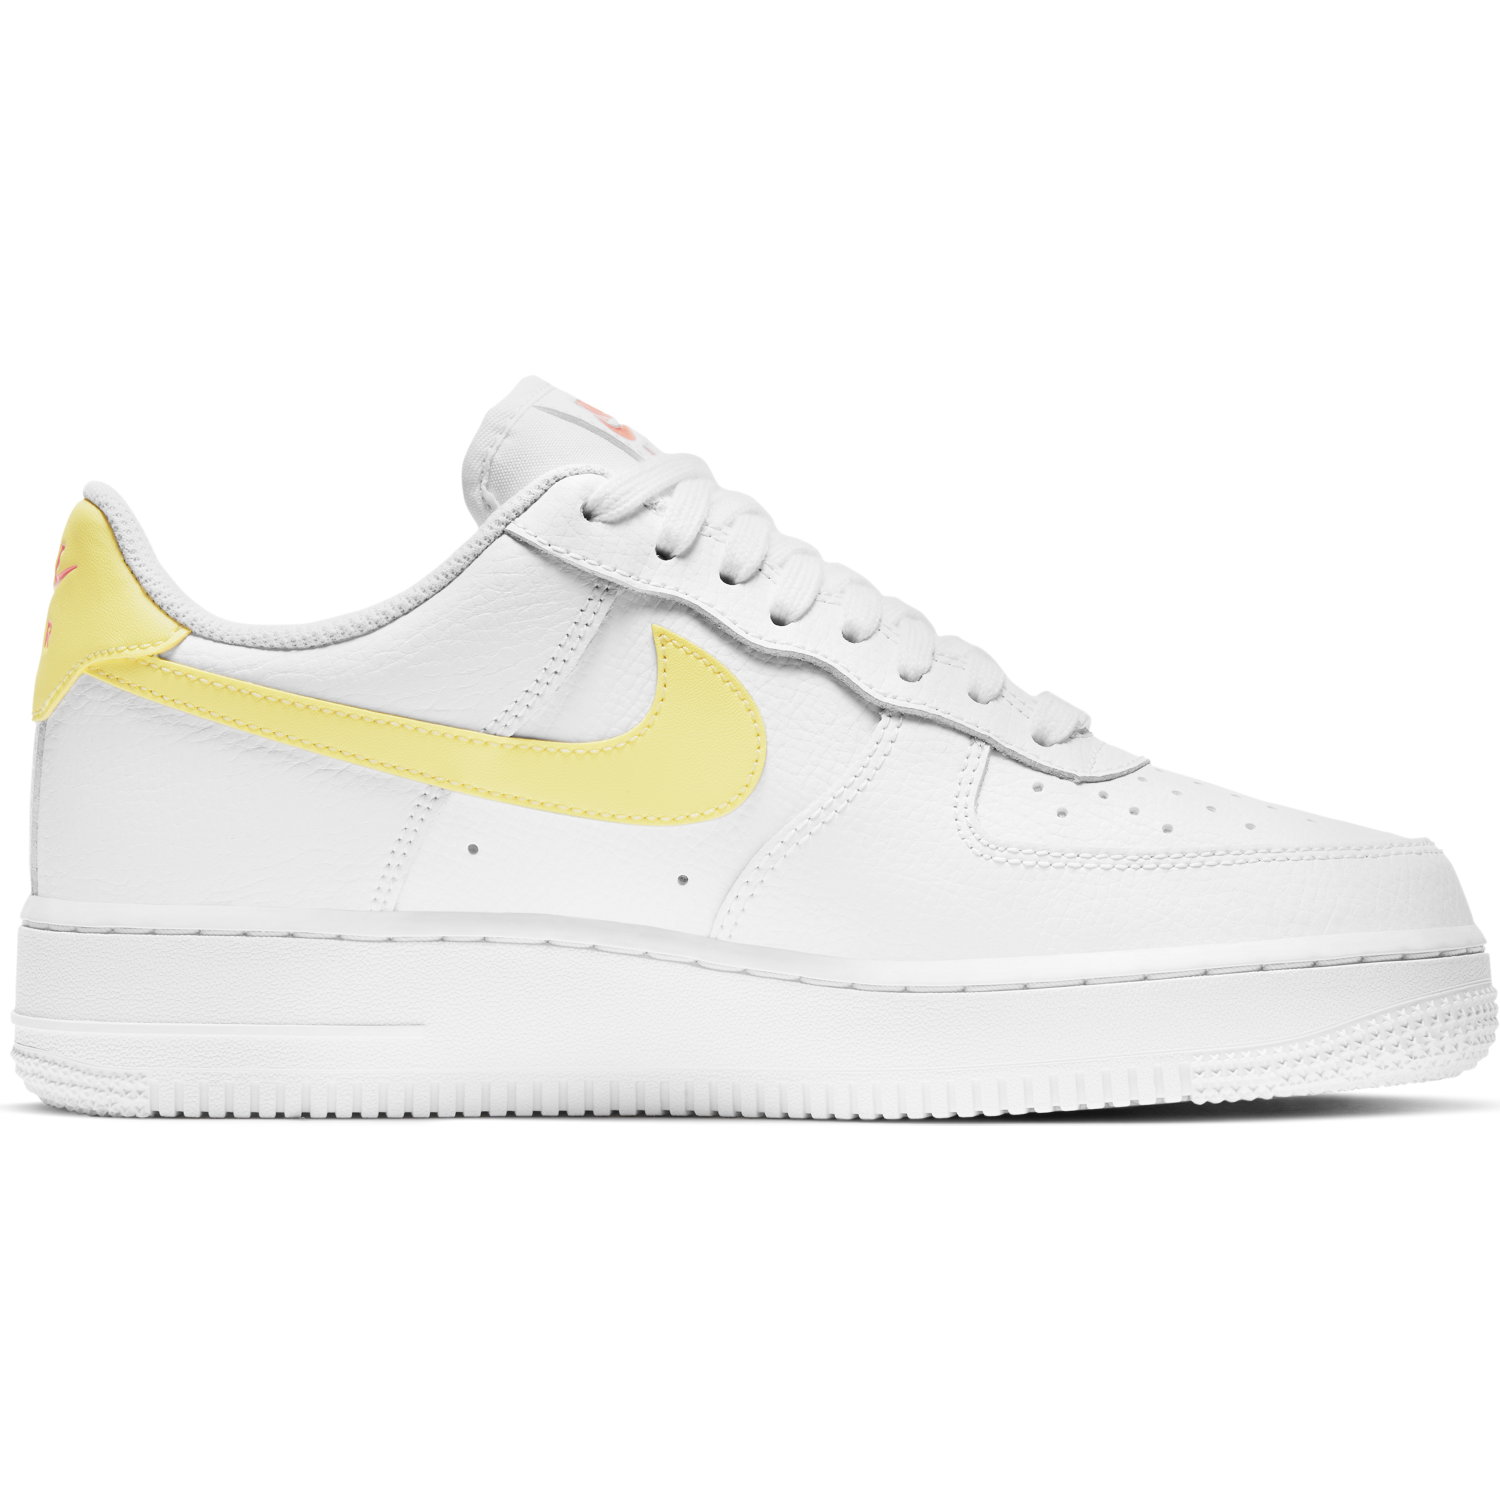 NIKE W'S FOOTWEAR W AIR FORCE 1 '07 - WHITE/LIGHT CITRON